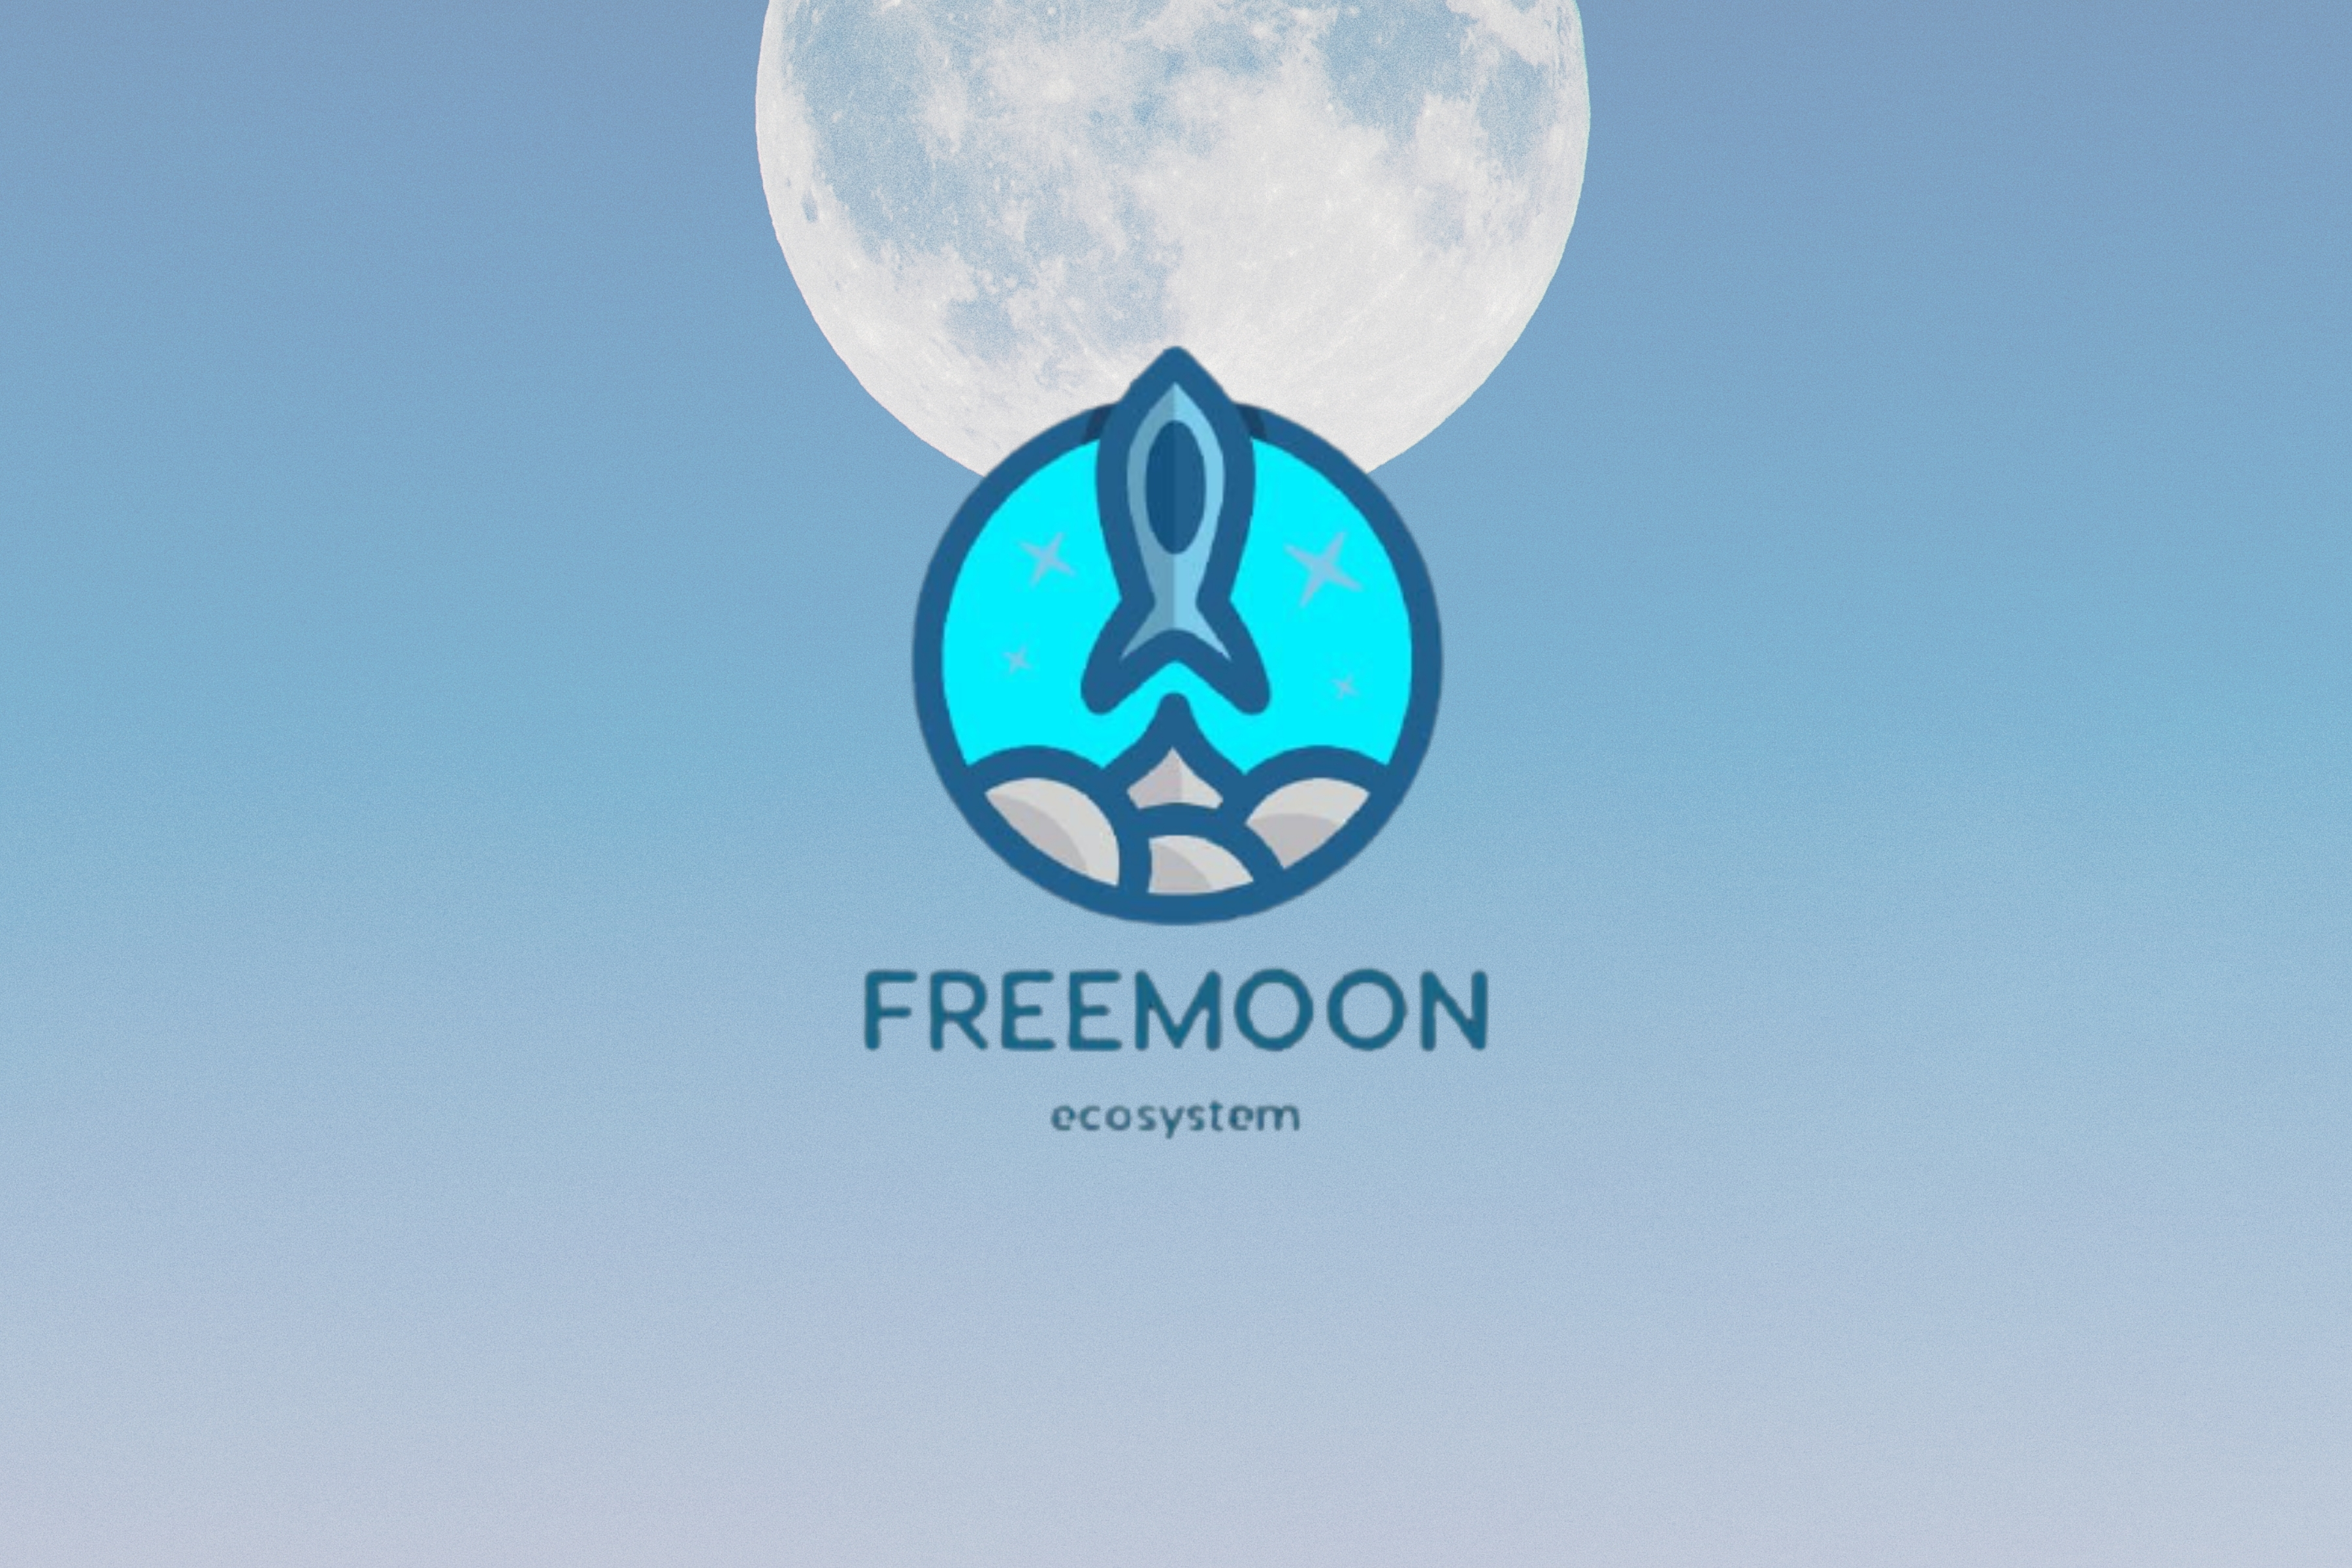 Freemoon Announces Development of Smart Contract Placed on Ethereum and Binance Smart Chain